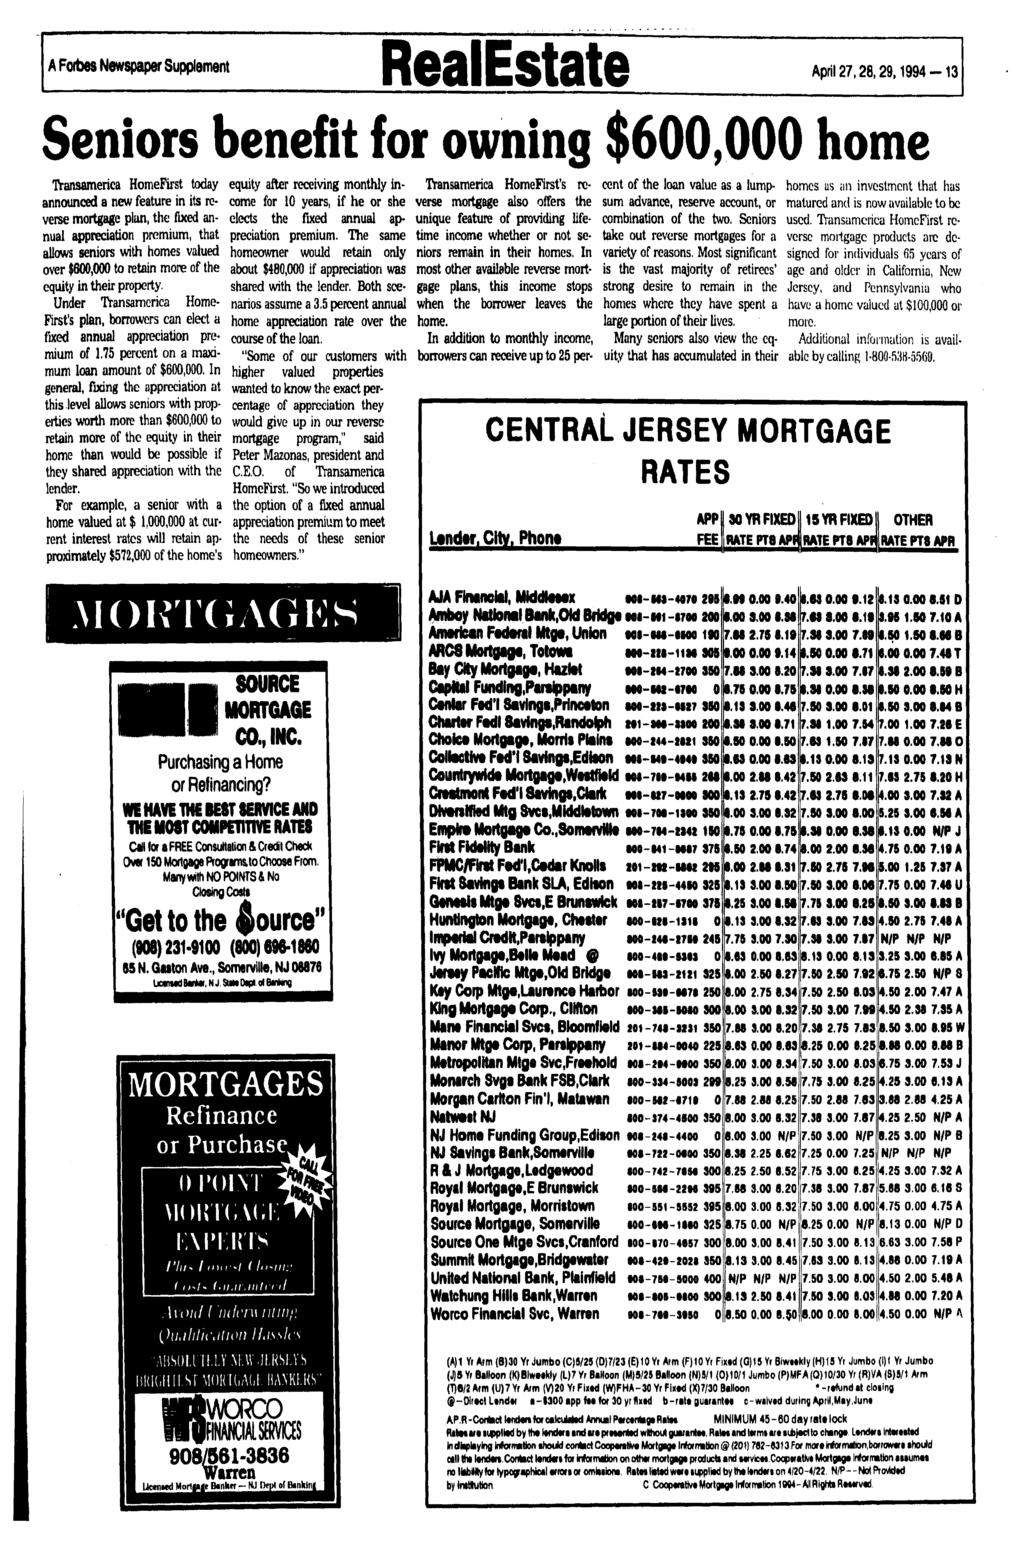 A Forbes Newspaper Supplement RealEstate April 27,28,29,1994-13 Seniors benefit for owning $600,000 home Transamerica HomeFirst today announced a new feature in its reverse equity after receiving